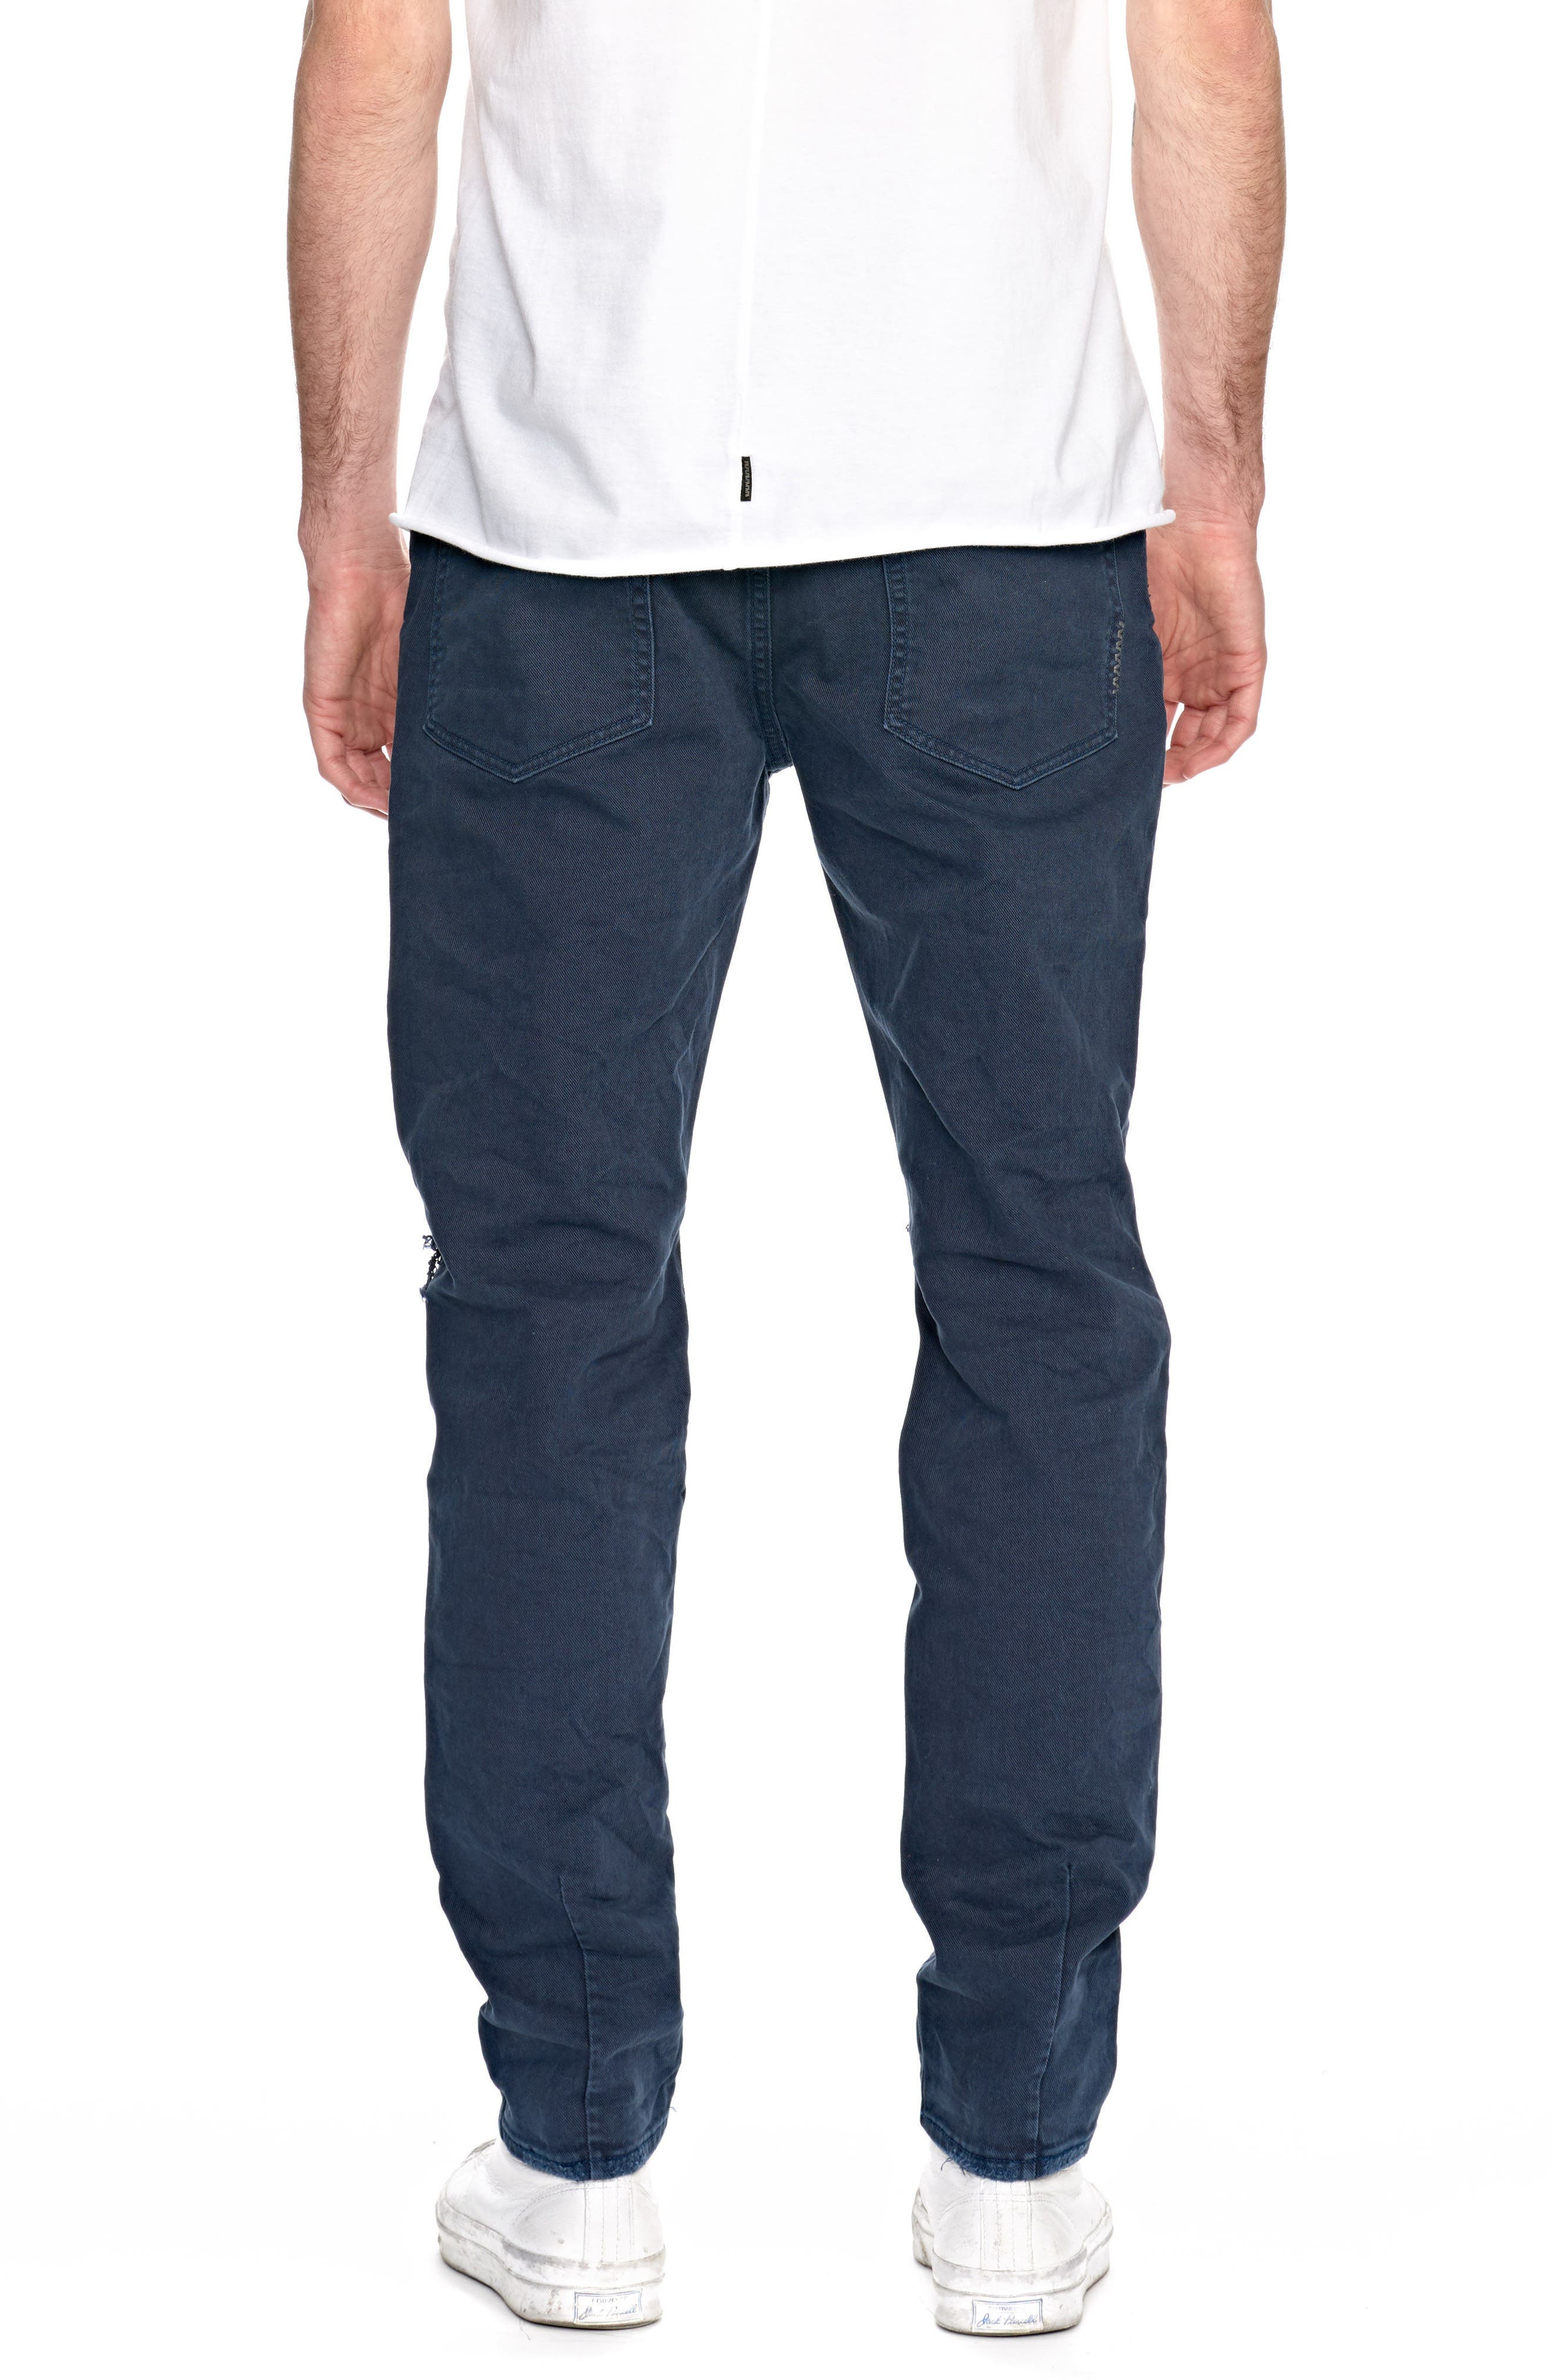 Ray Slouchy Slim Fit Jeans,                             Alternate thumbnail 2, color,                             406